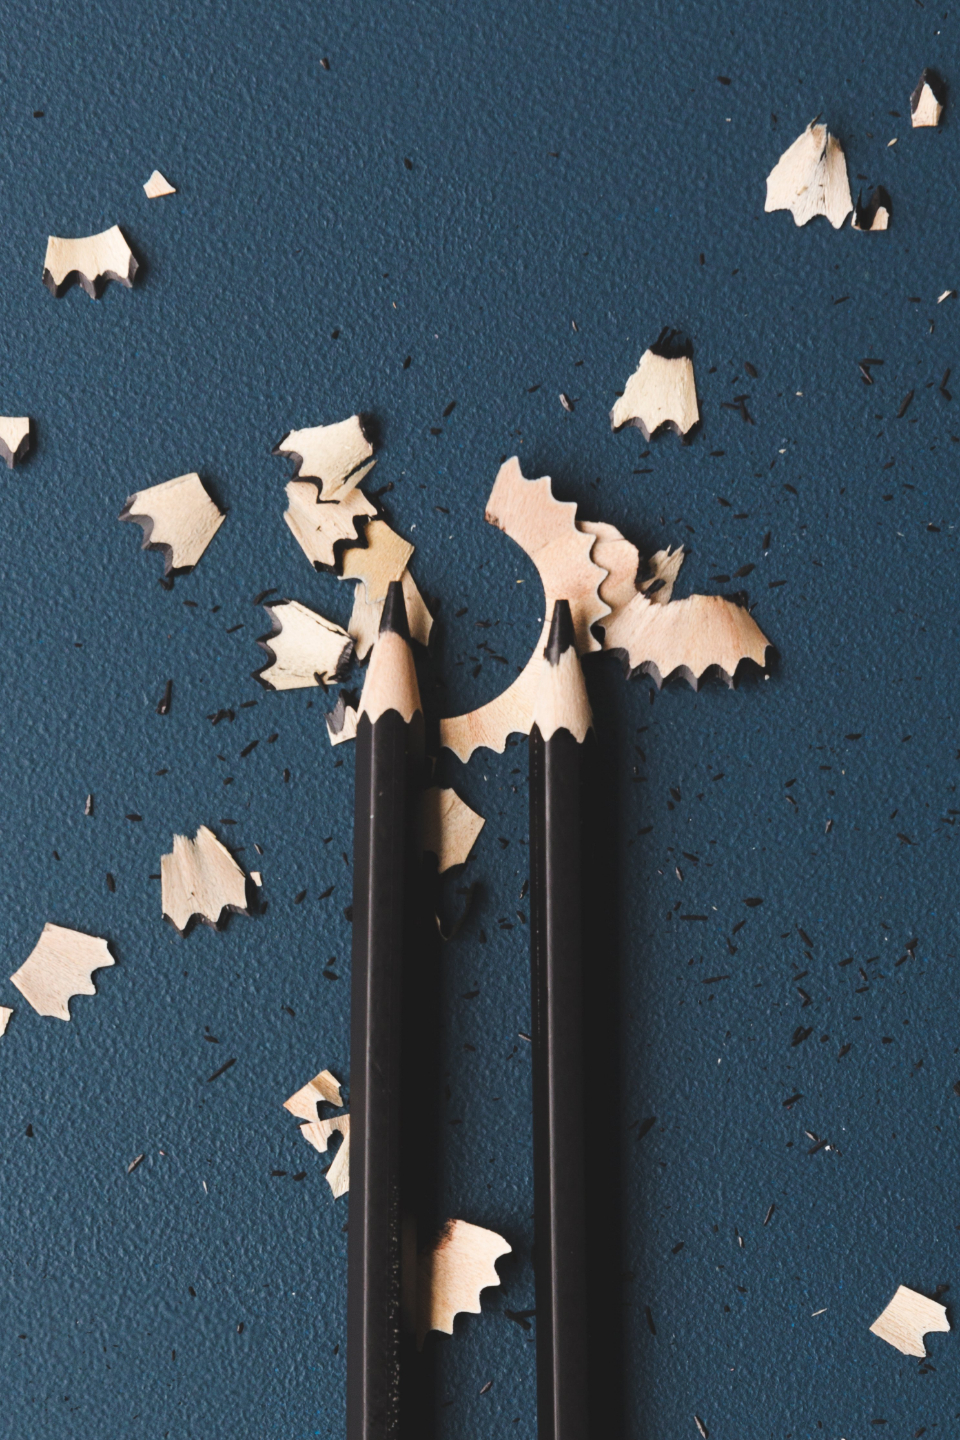 Shaved Pencils Art Background Blue drawing Flat Lay Pencil Shavings two dark creative design artist pieces